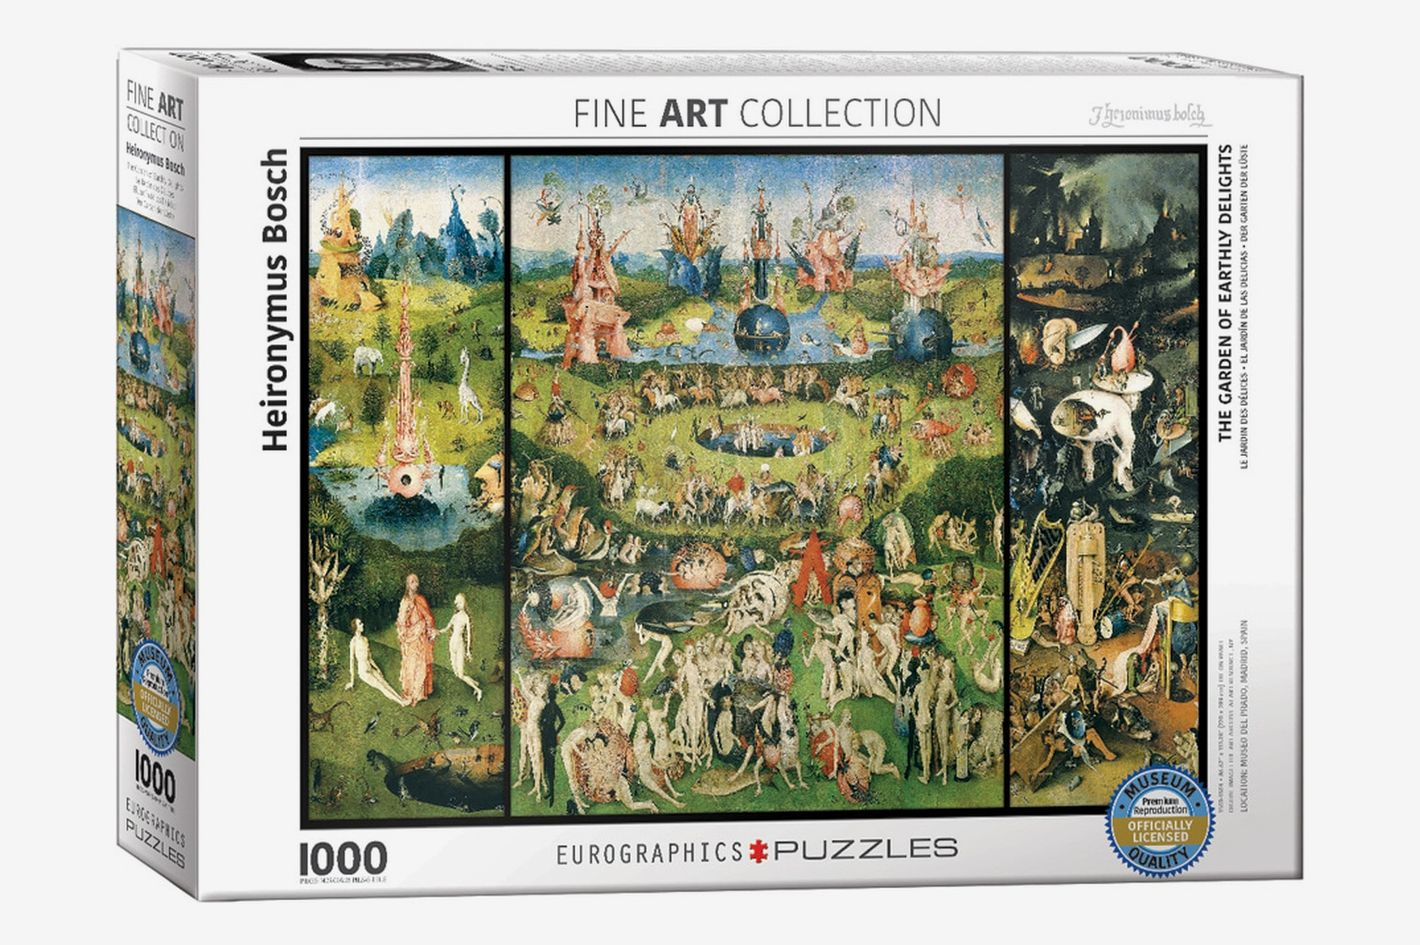 """Hieronymus Bosch """"The Garden of Earthly Delights"""" 1000-Piece Puzzle"""